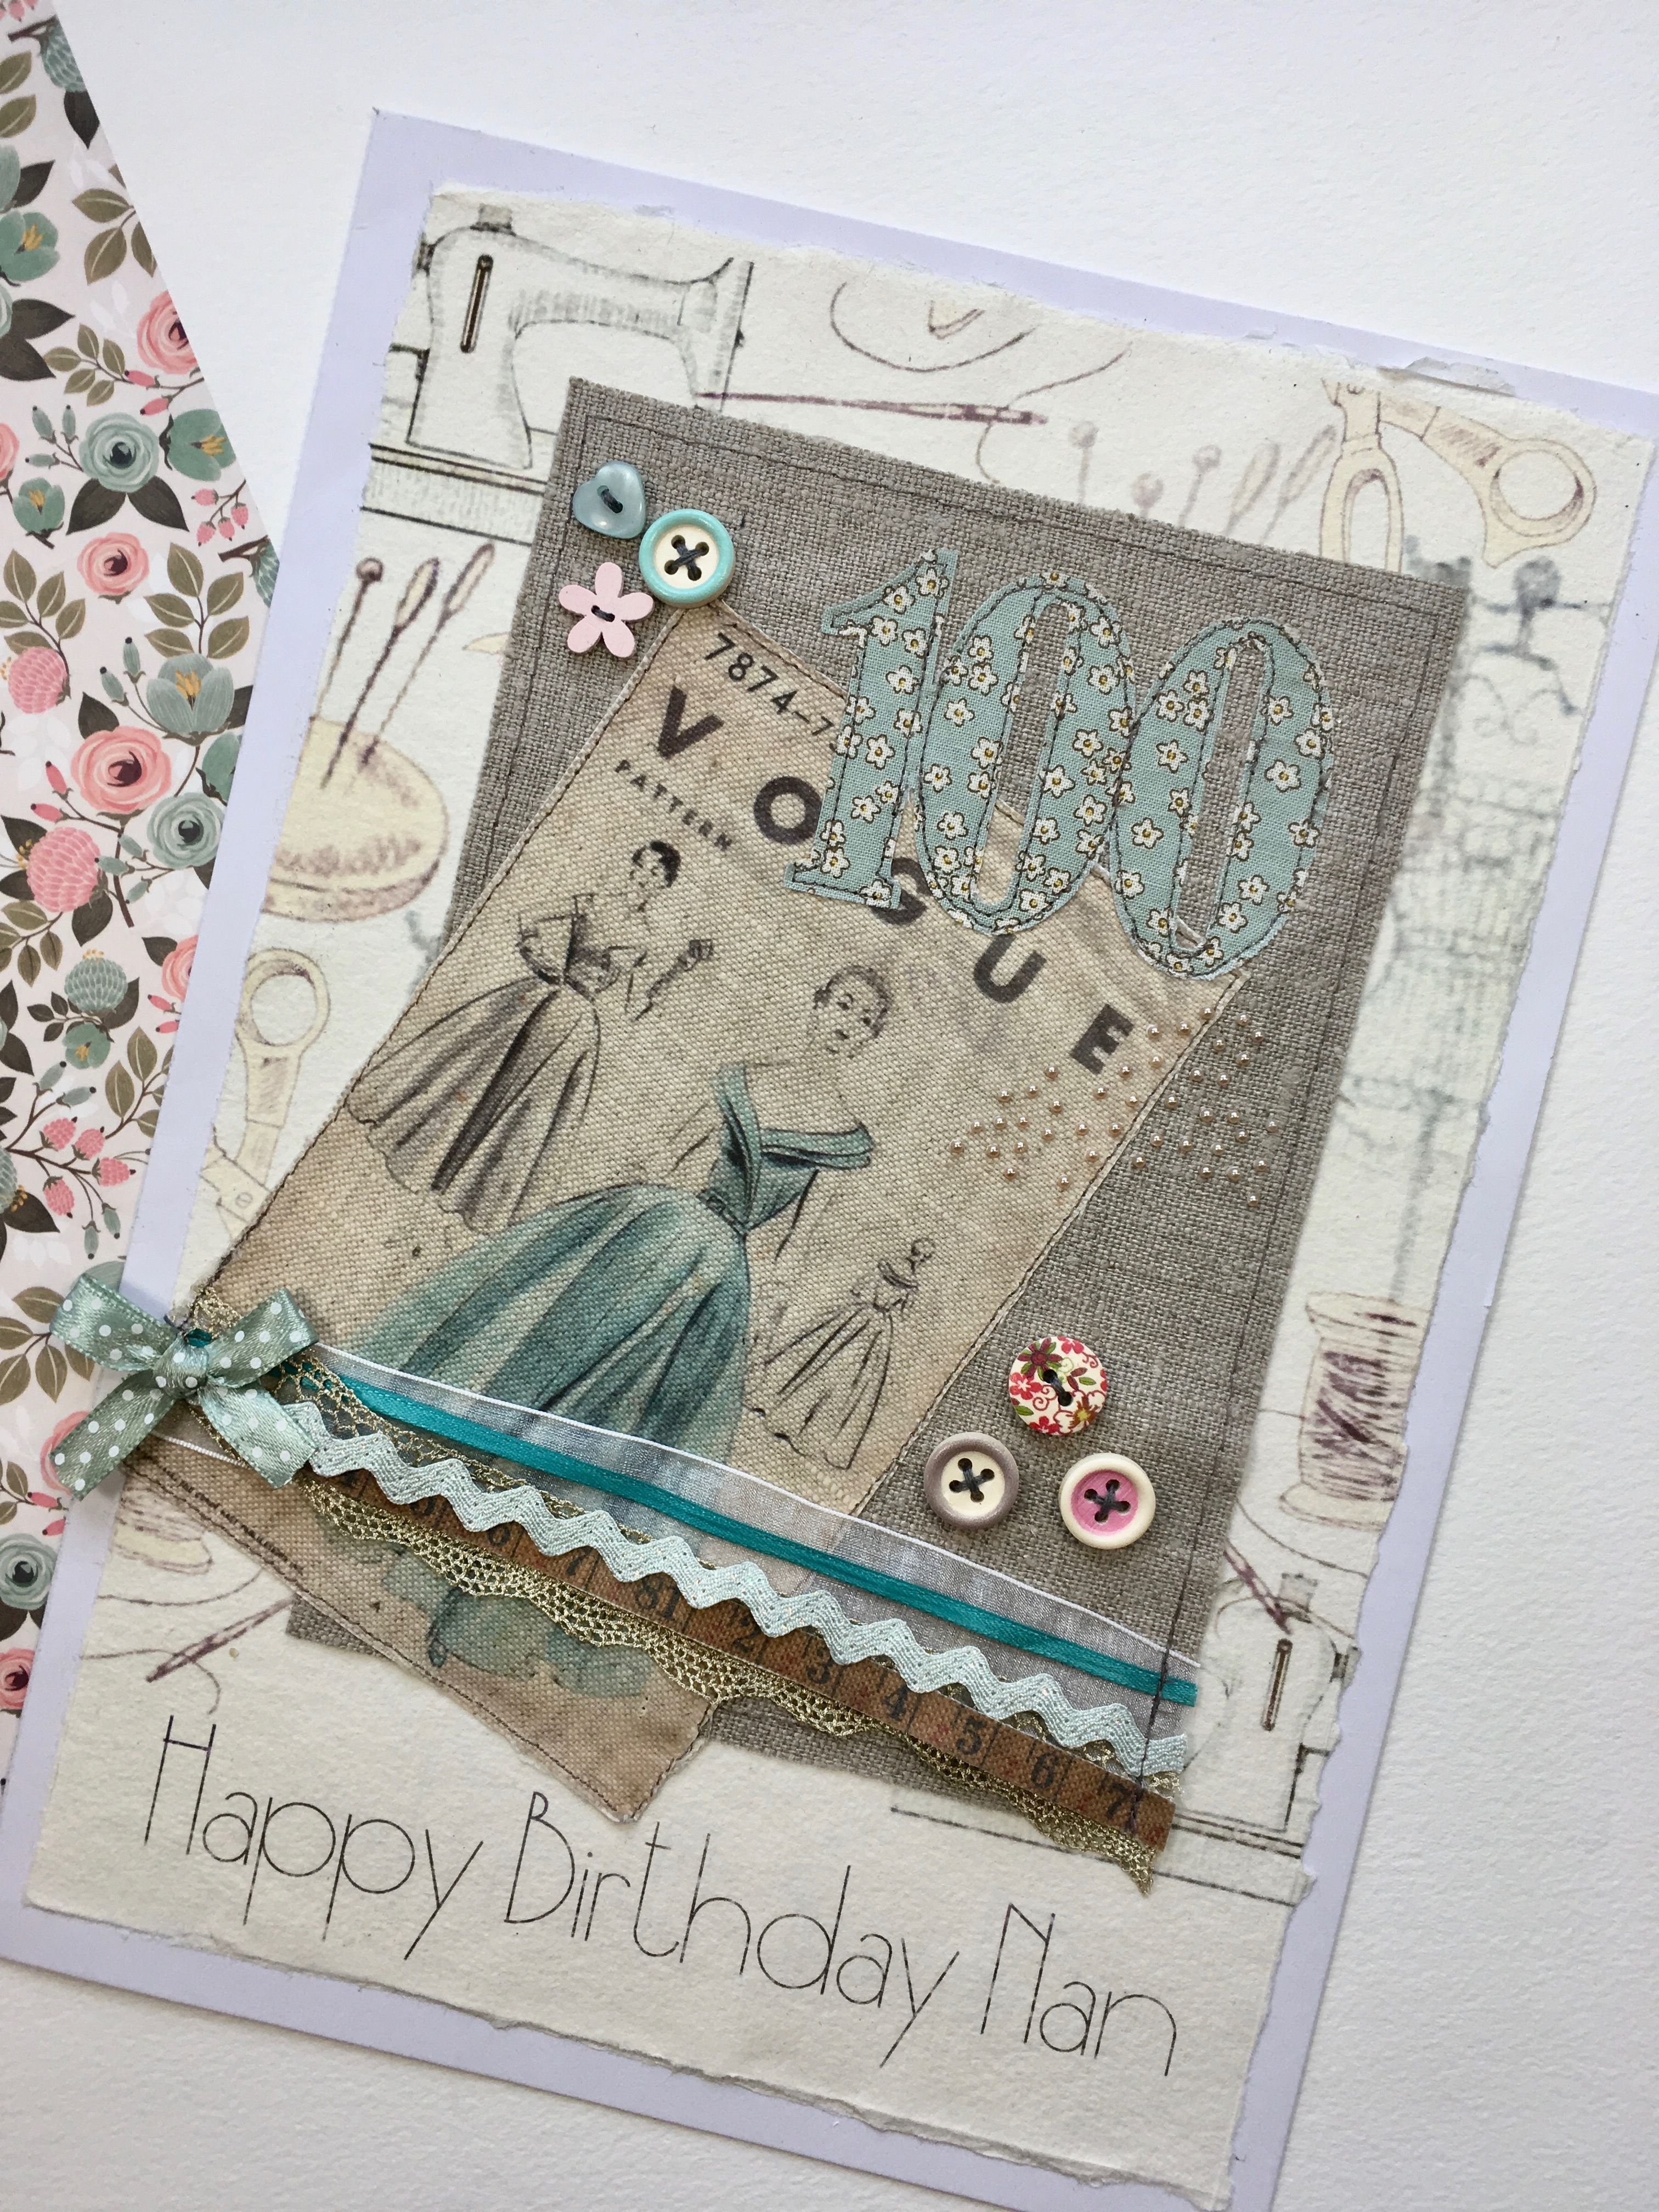 Bespoke Vintage Fashion Vogue Sewing Pattern Style Card For A 100 Year Old Lady Who Used To Be Seamstress I Love This The Most As Its So Tactile